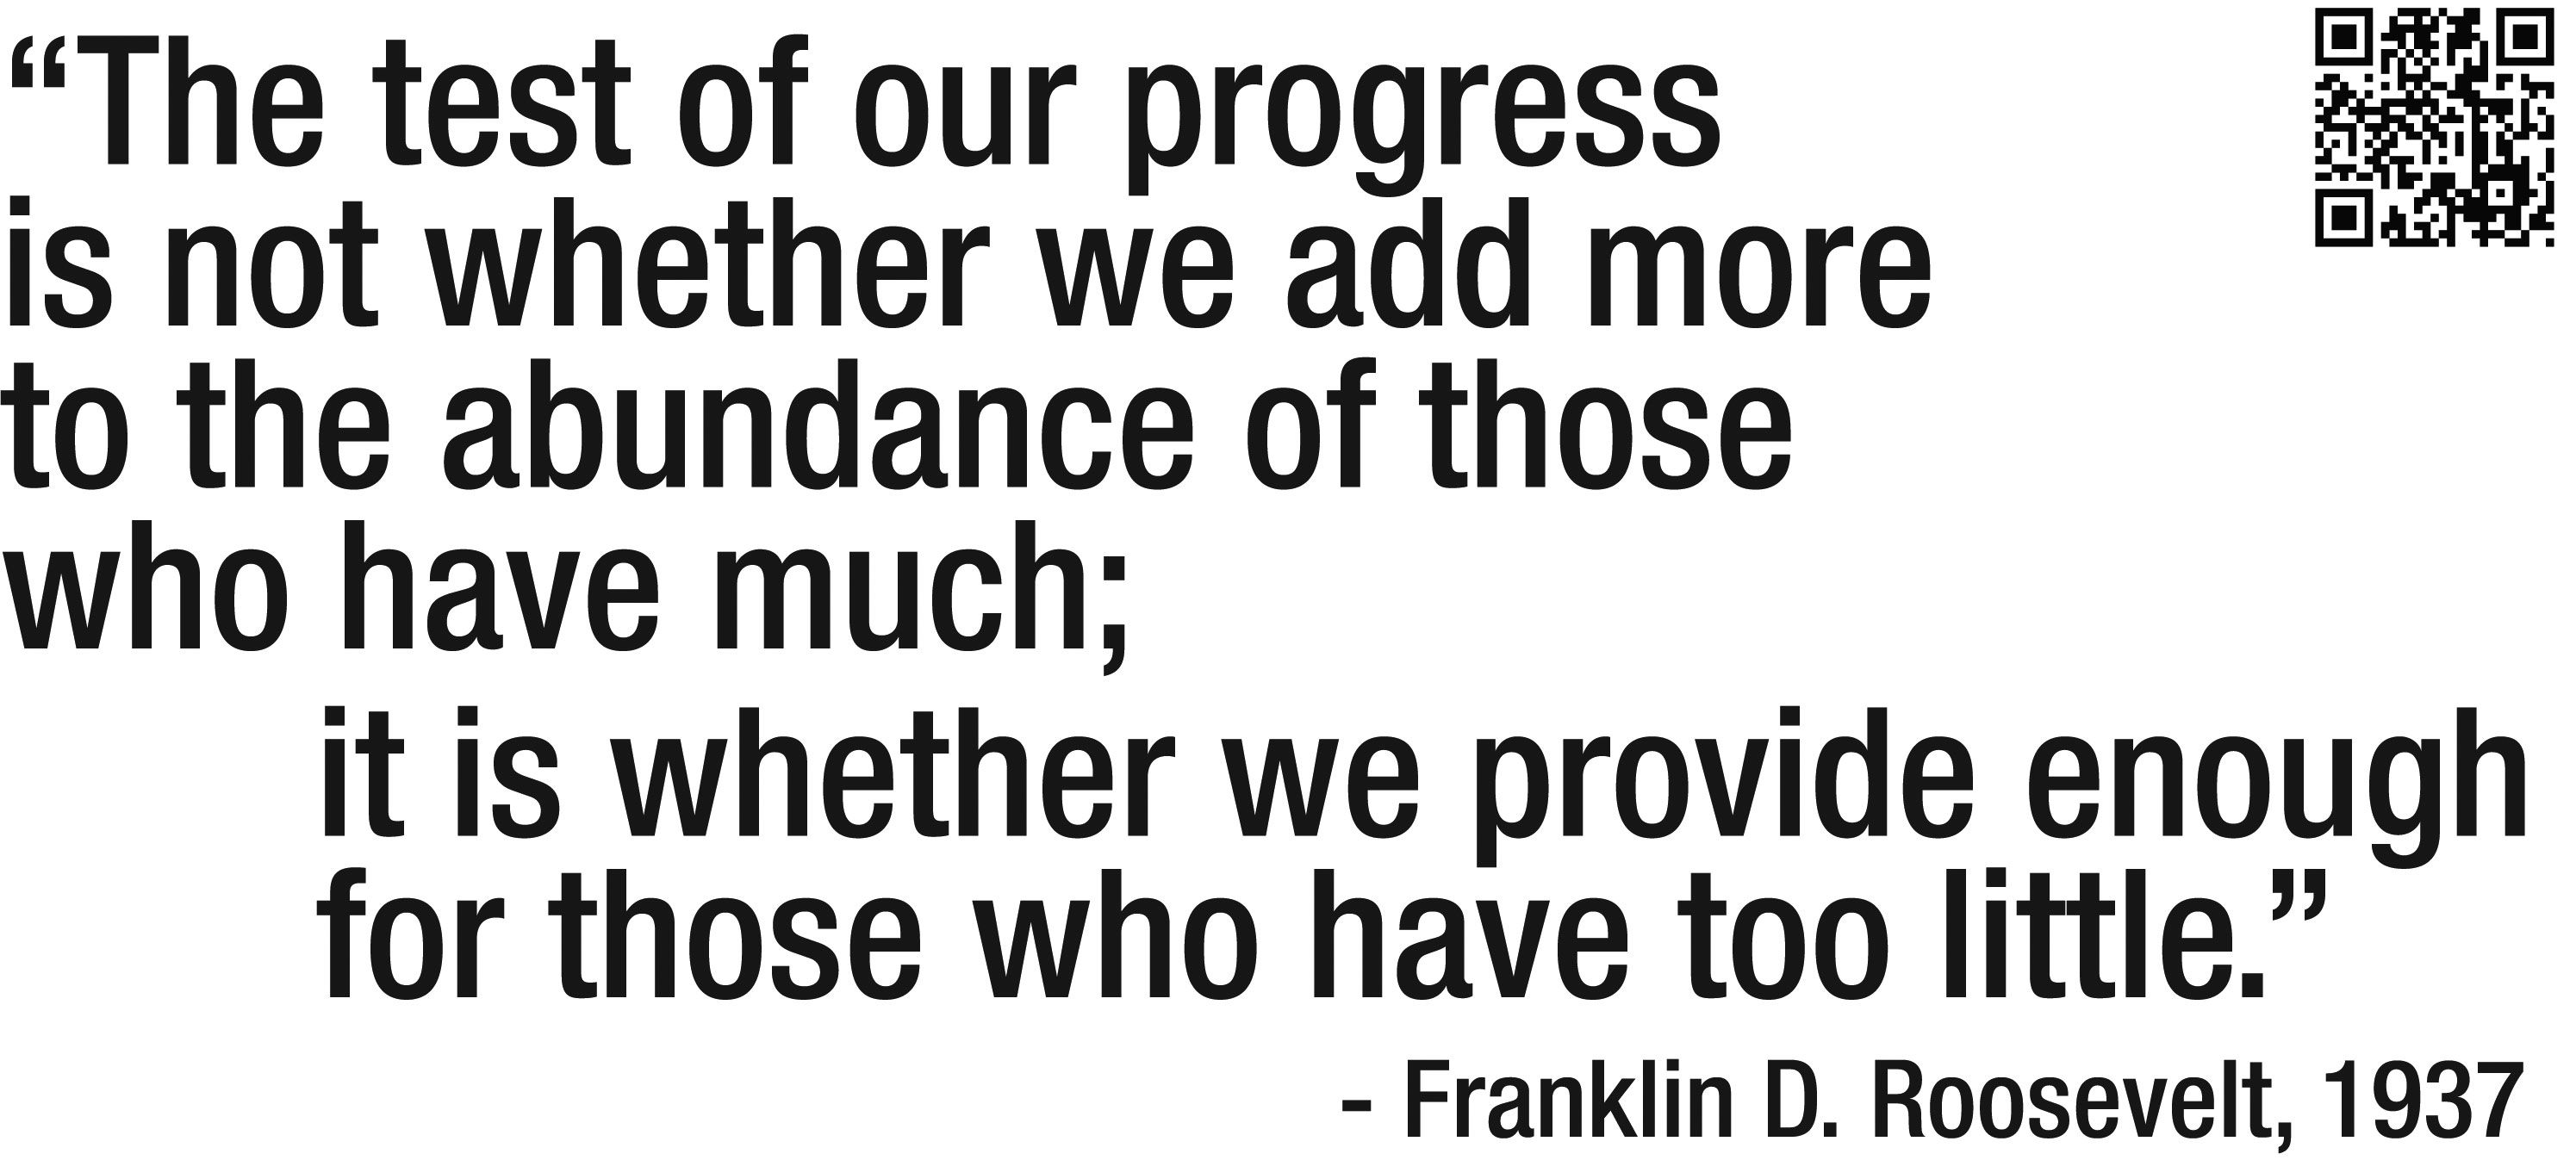 Franklin D Roosevelt Inspirational Words Quotations Quotes To Live By